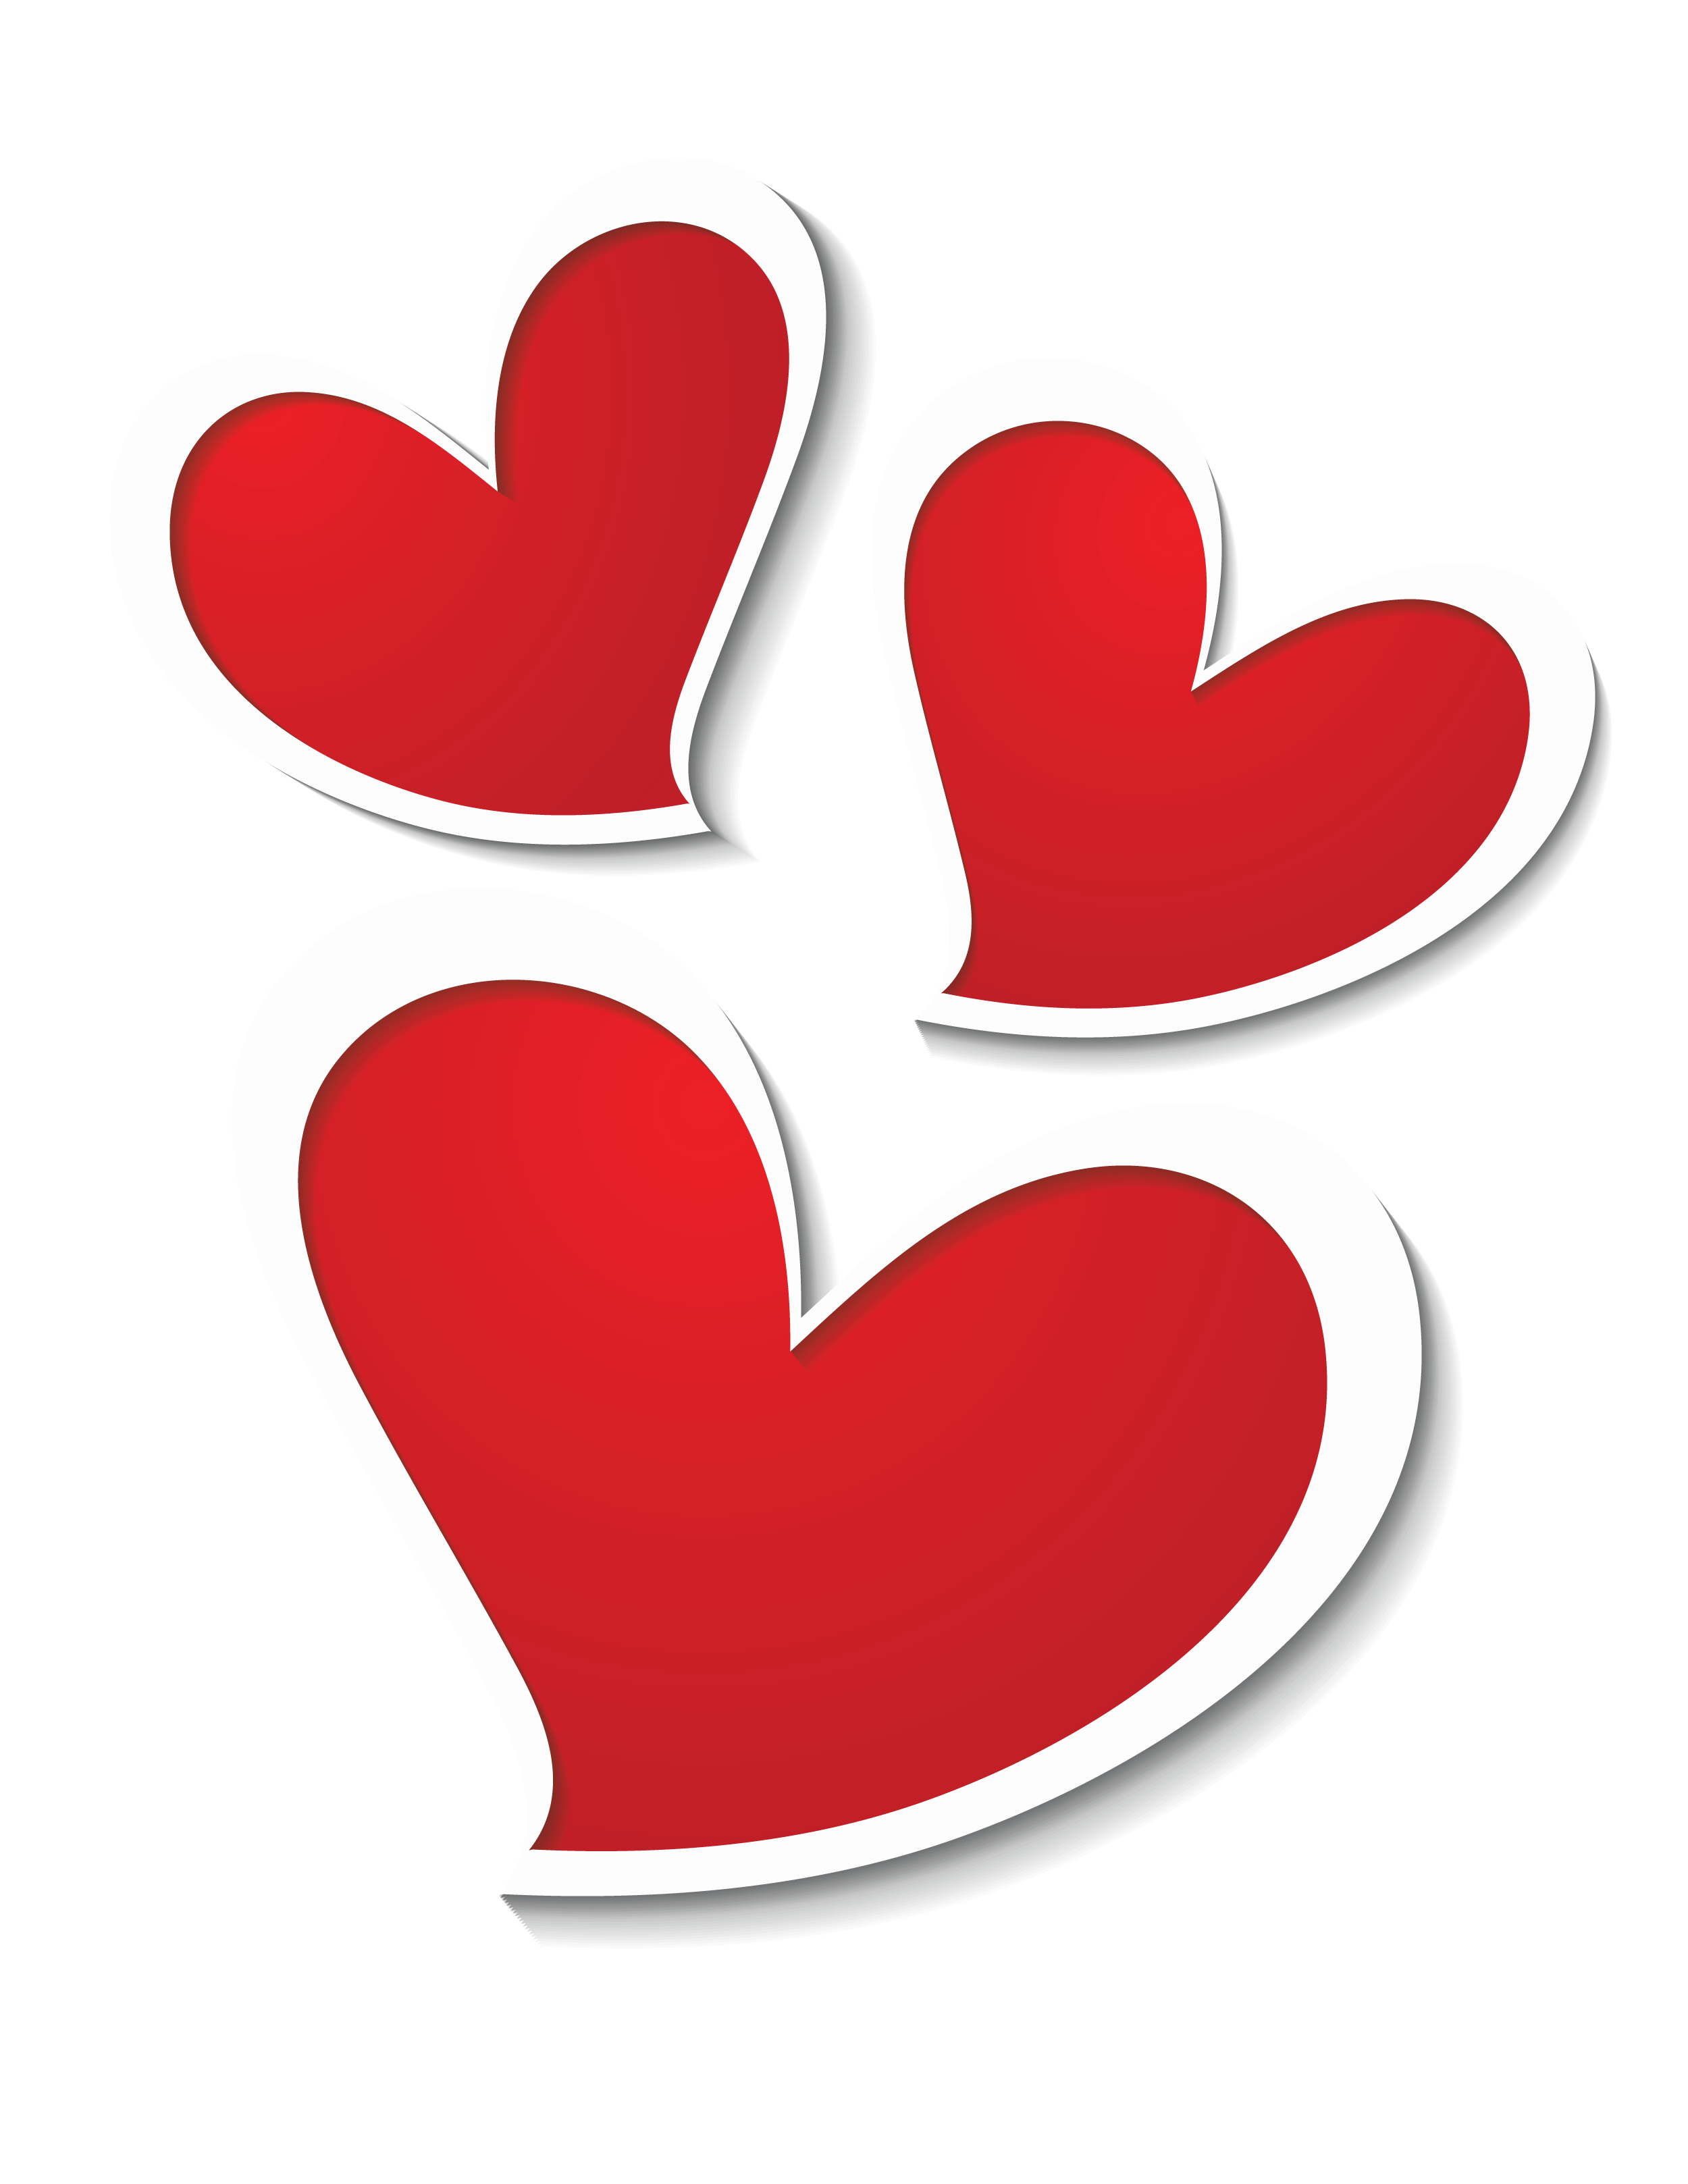 Hearts clipart png. Three decor picture gallery